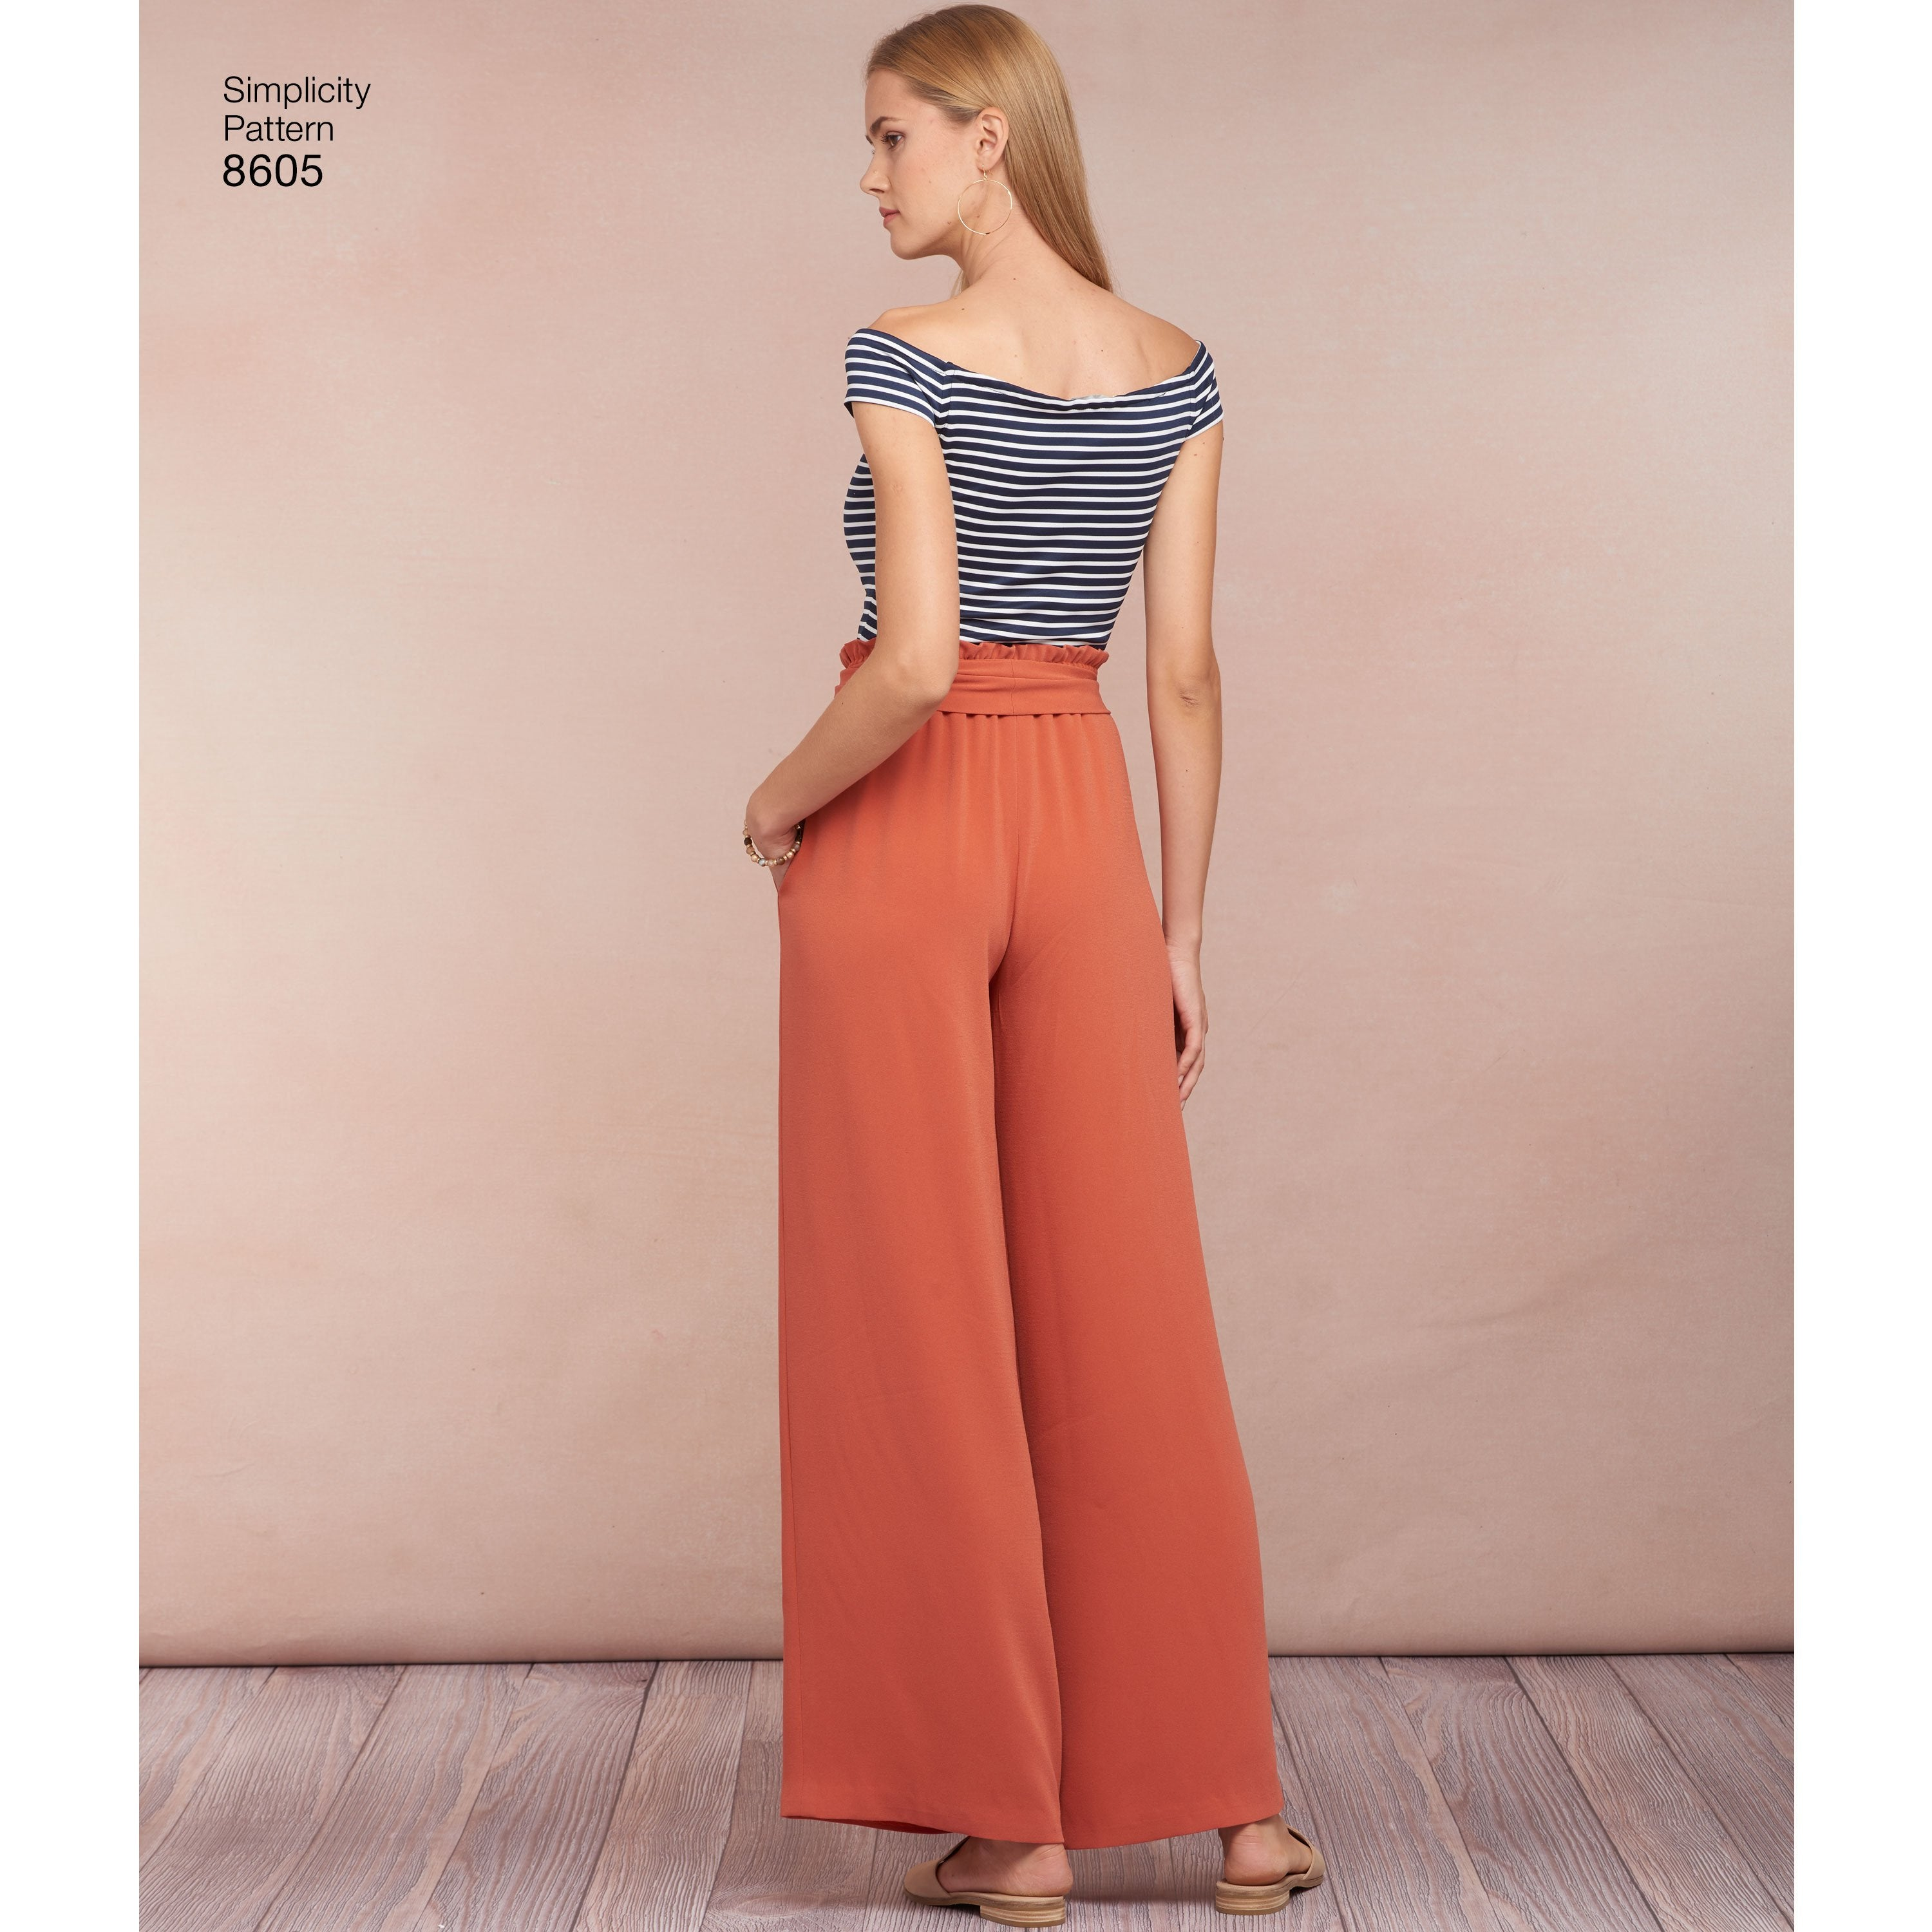 S8605 Women's Pull on Skirt and Pants